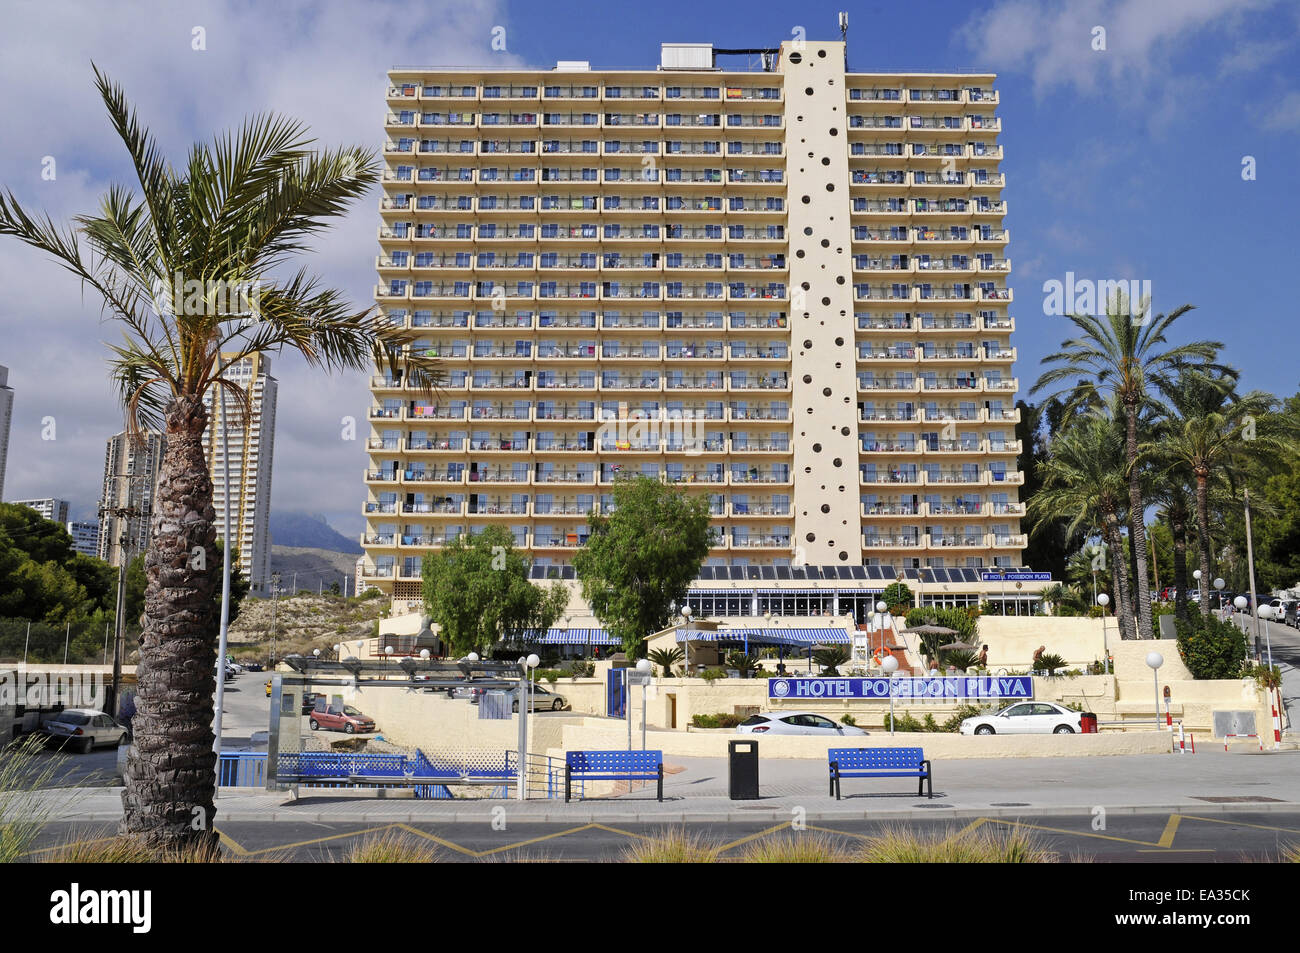 Hotel poseidon playa benidorm spain stock photo royalty for Hotel poseidon playa